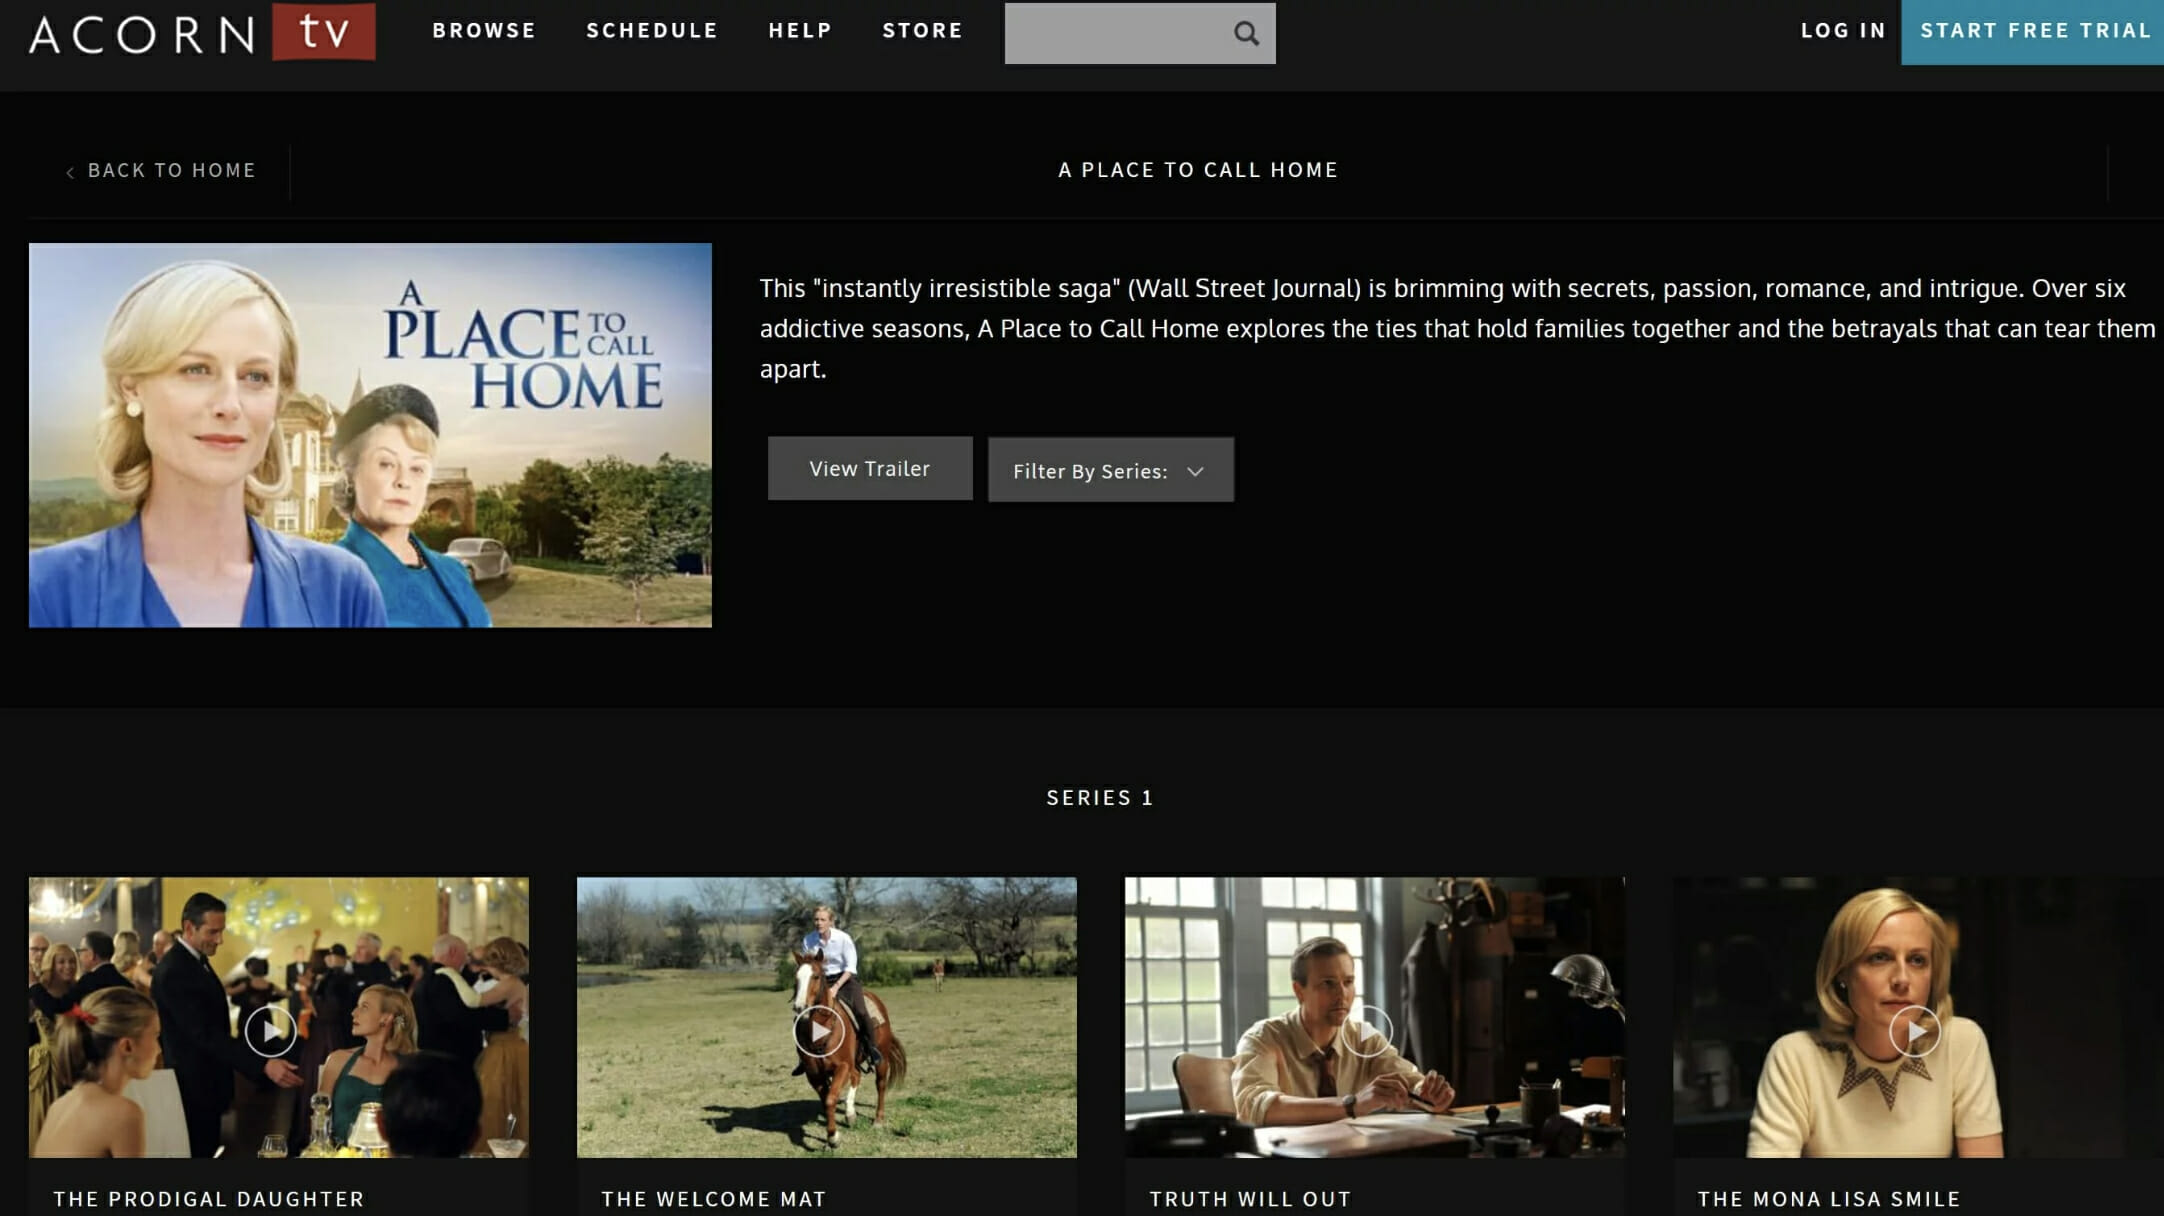 a place to call home series 1 buy online drama buy a place to call home how to watch a place to call home online acorn tv